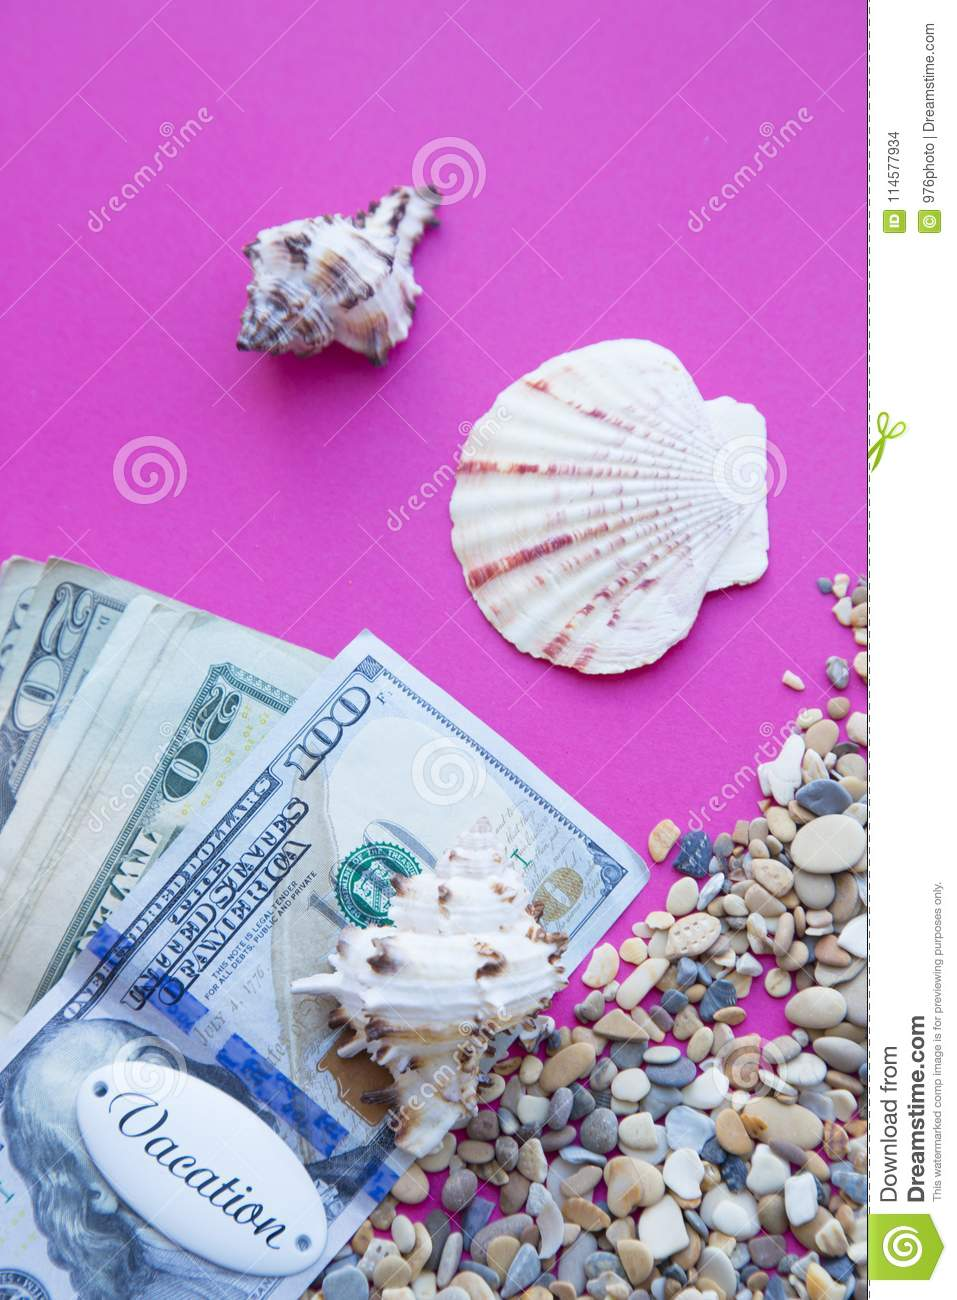 Vacation Holiday Concept Stock Photo. Image Of Tourism